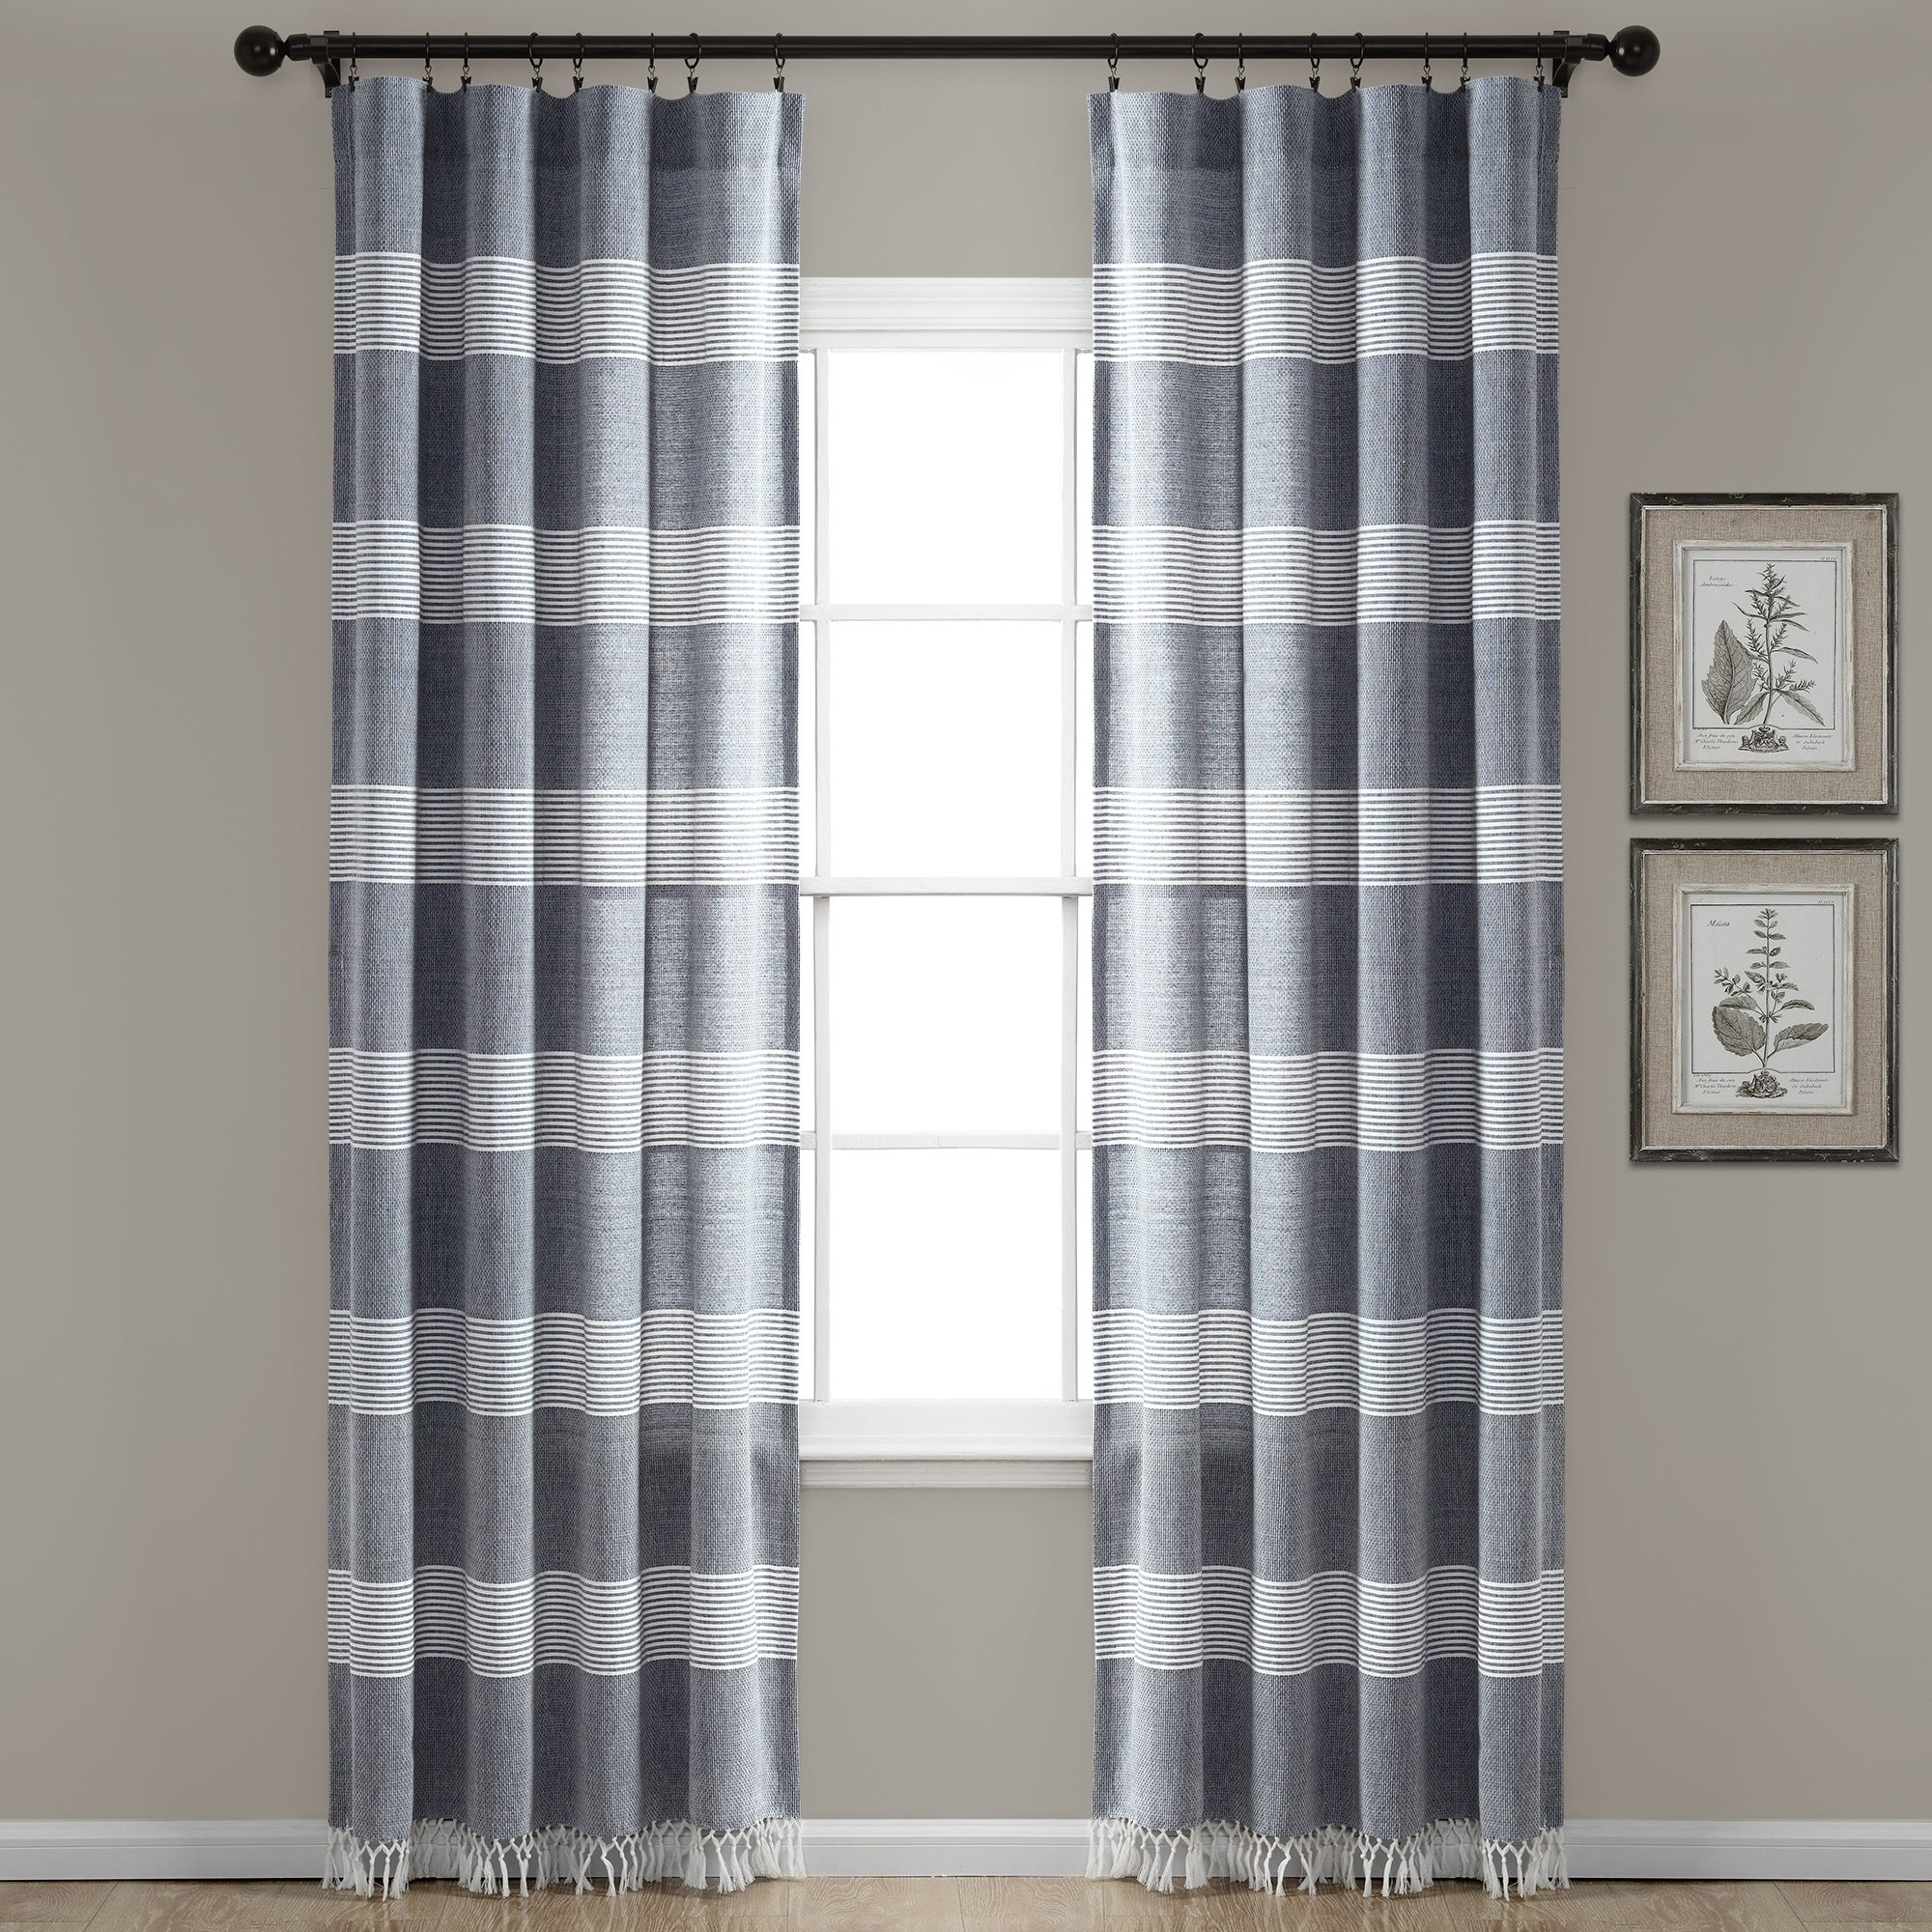 Lush Decor Tucker Stripe Yarn Dyed Cotton Knotted Tassel Window Curtain Panel Pair With Ombre Stripe Yarn Dyed Cotton Window Curtain Panel Pairs (View 2 of 20)